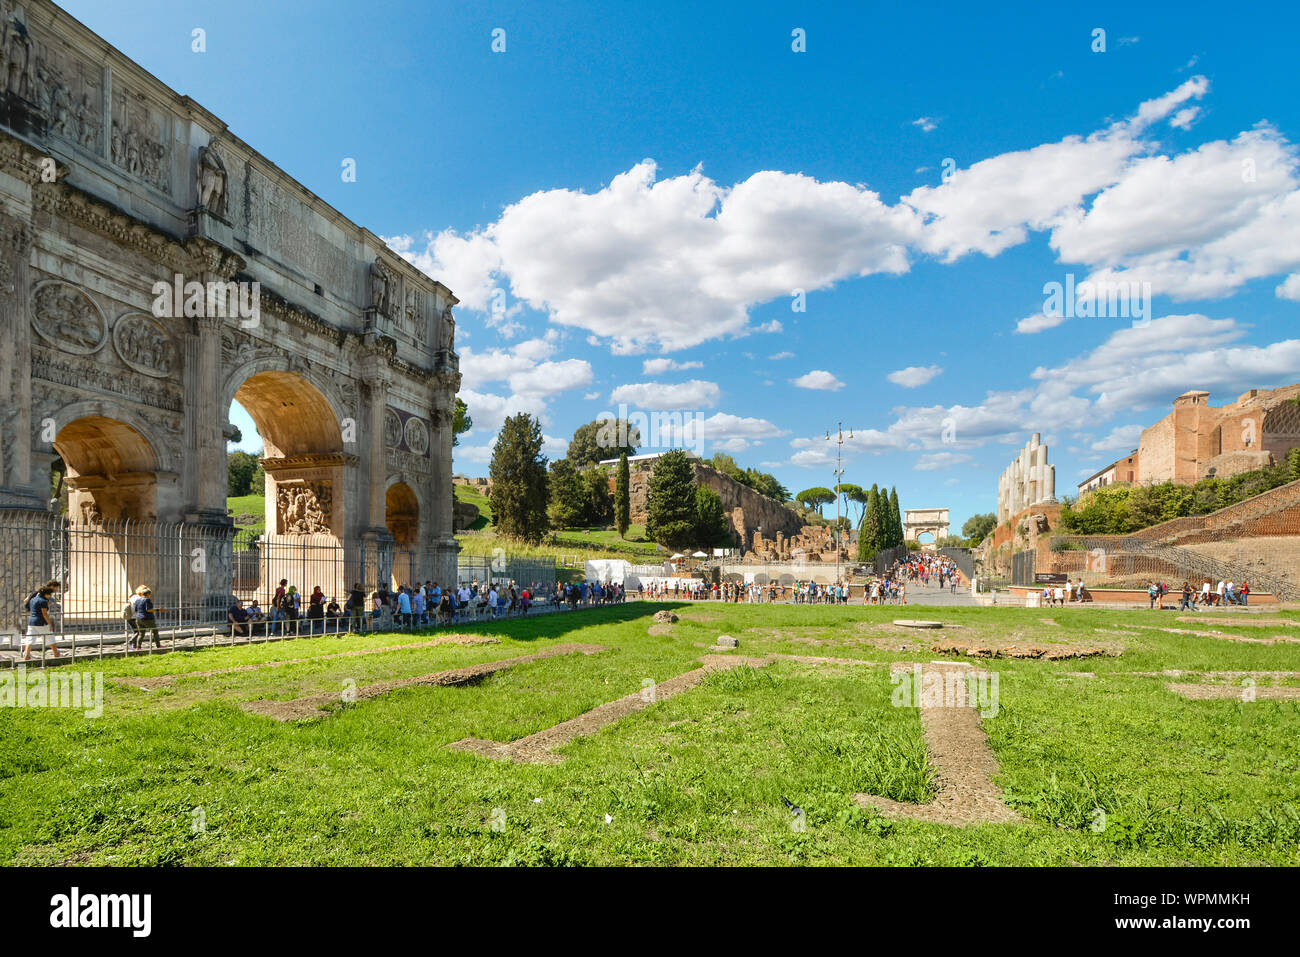 Tourists visit the Roman Forum, with the Arch of Constantine and Arch of Titus in view in Rome, Italy. Stock Photo